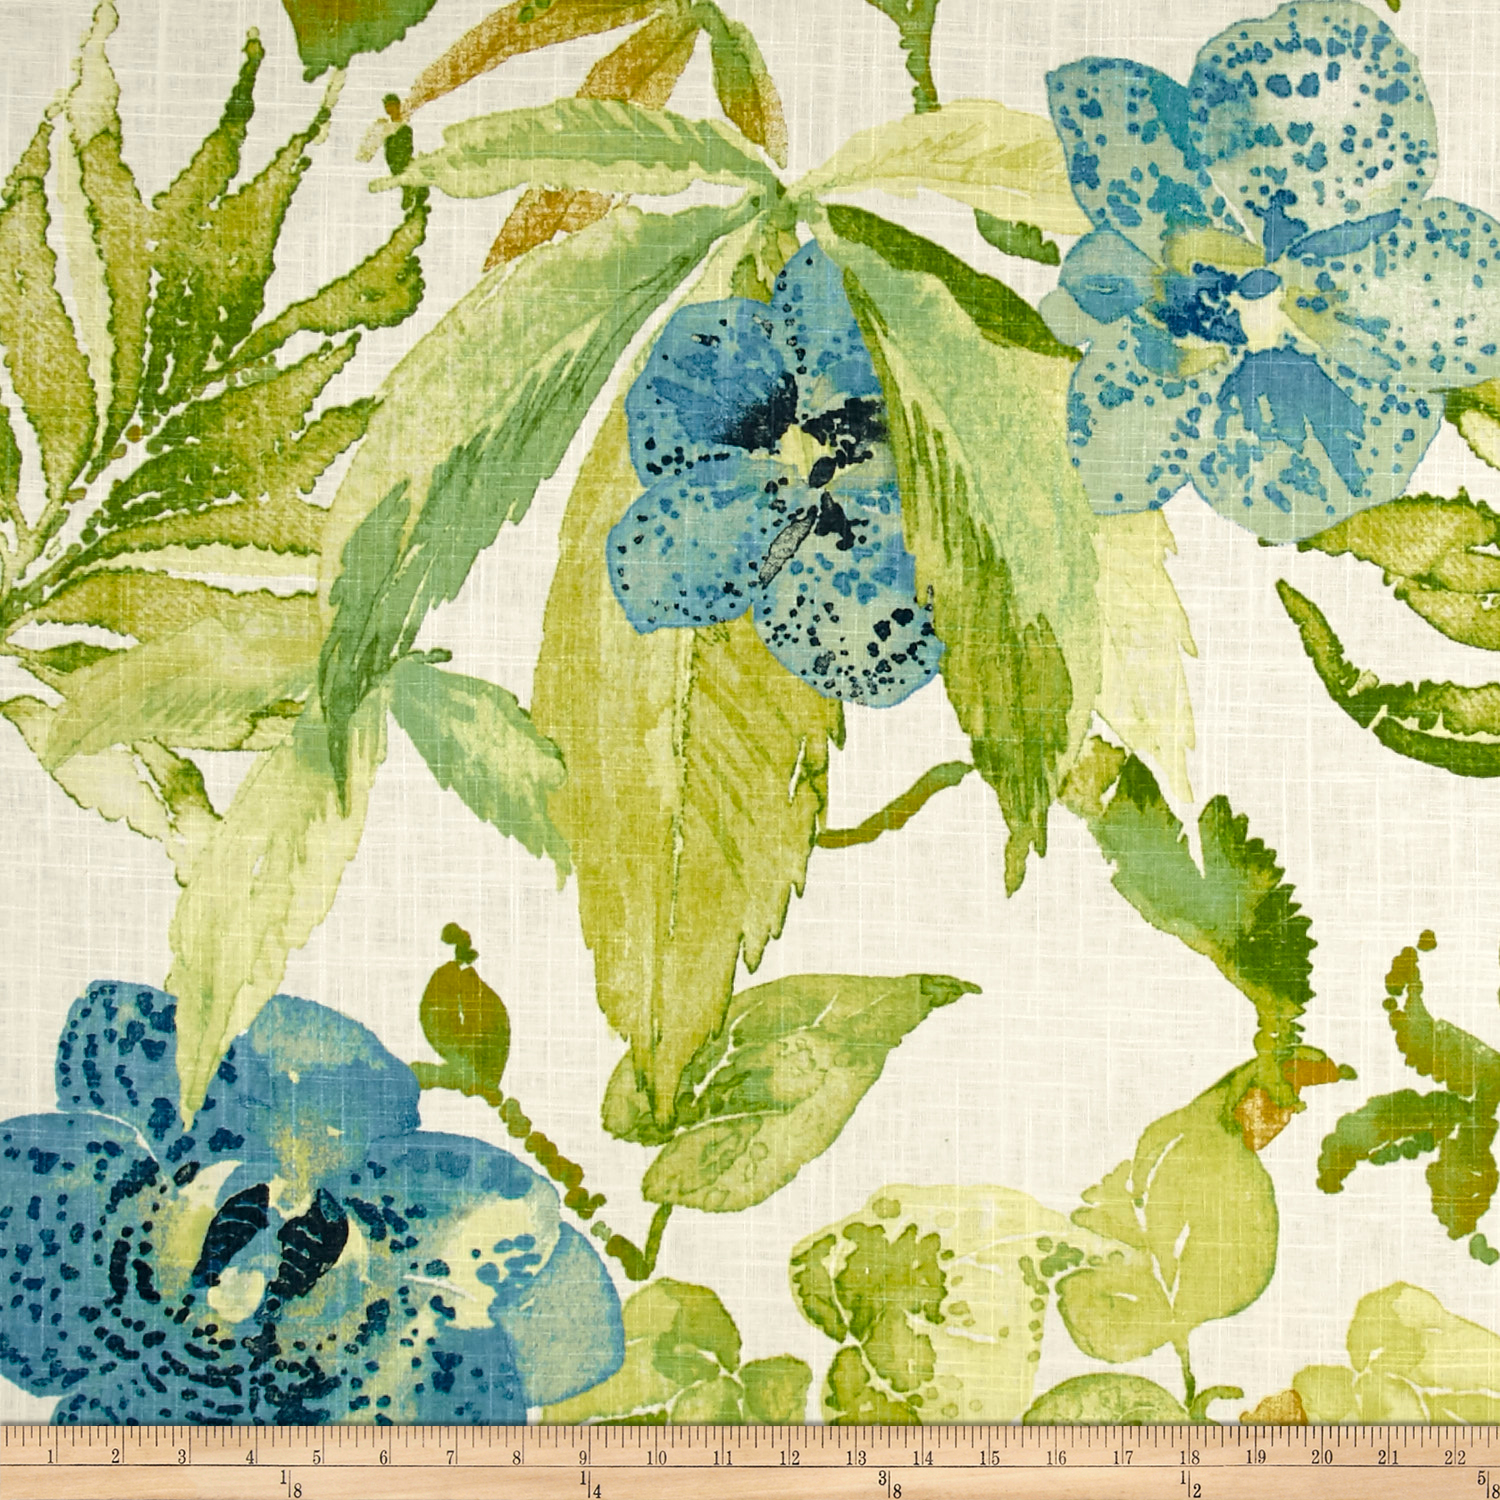 Richloom Galapagos Linen Lapis Fabric by TNT in USA